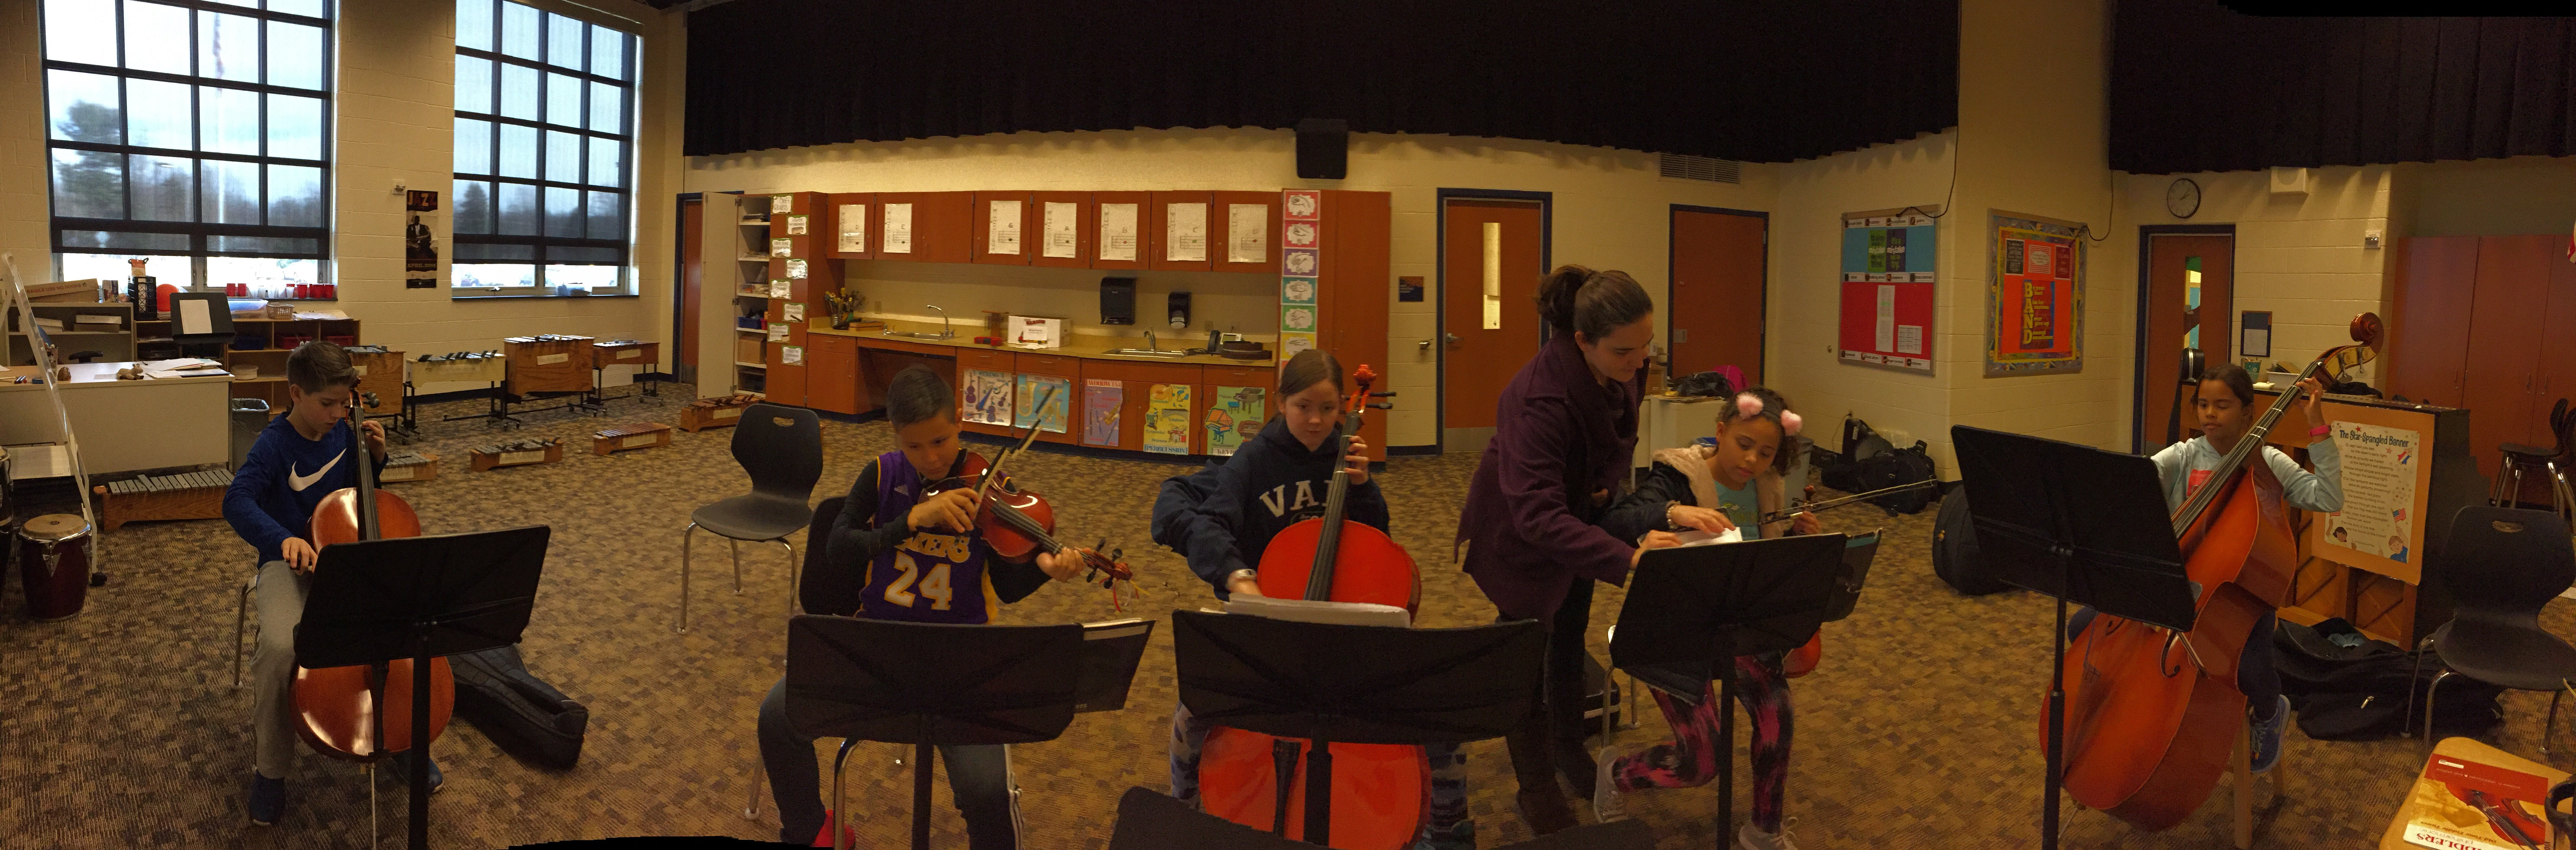 orchestra students practicing with instruments